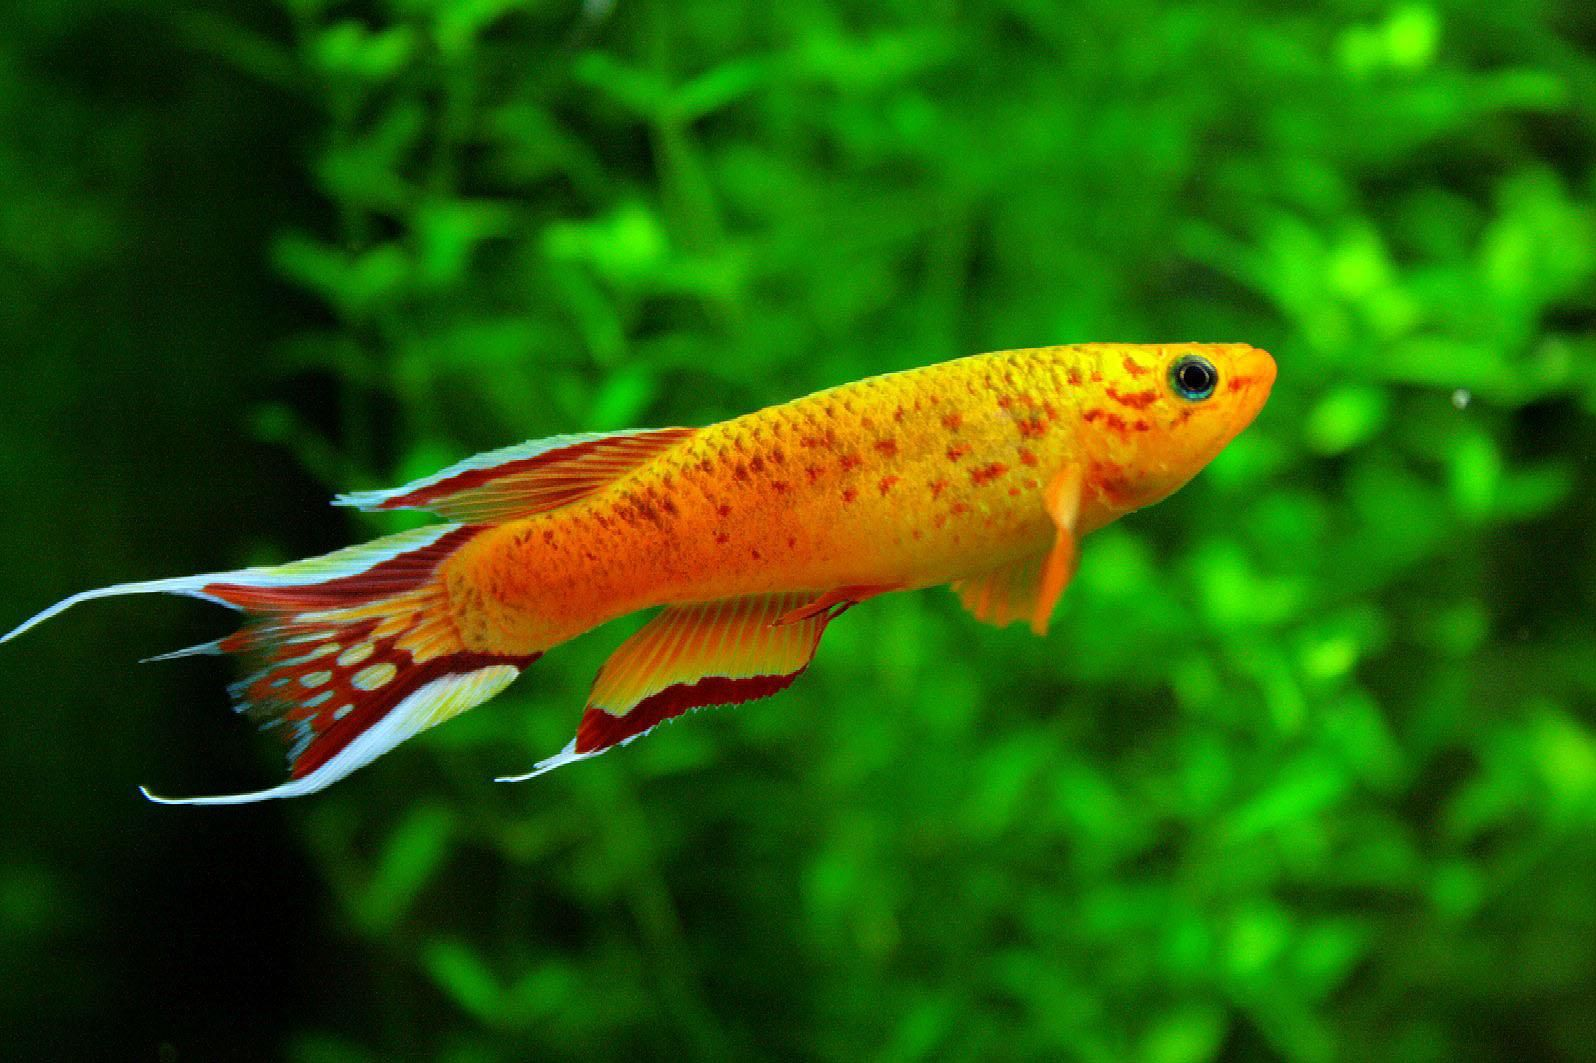 Freshwater fish for aquarium in india - Freshwater Fish Tropical Discussion Tropical Fish Forums Wallpaper